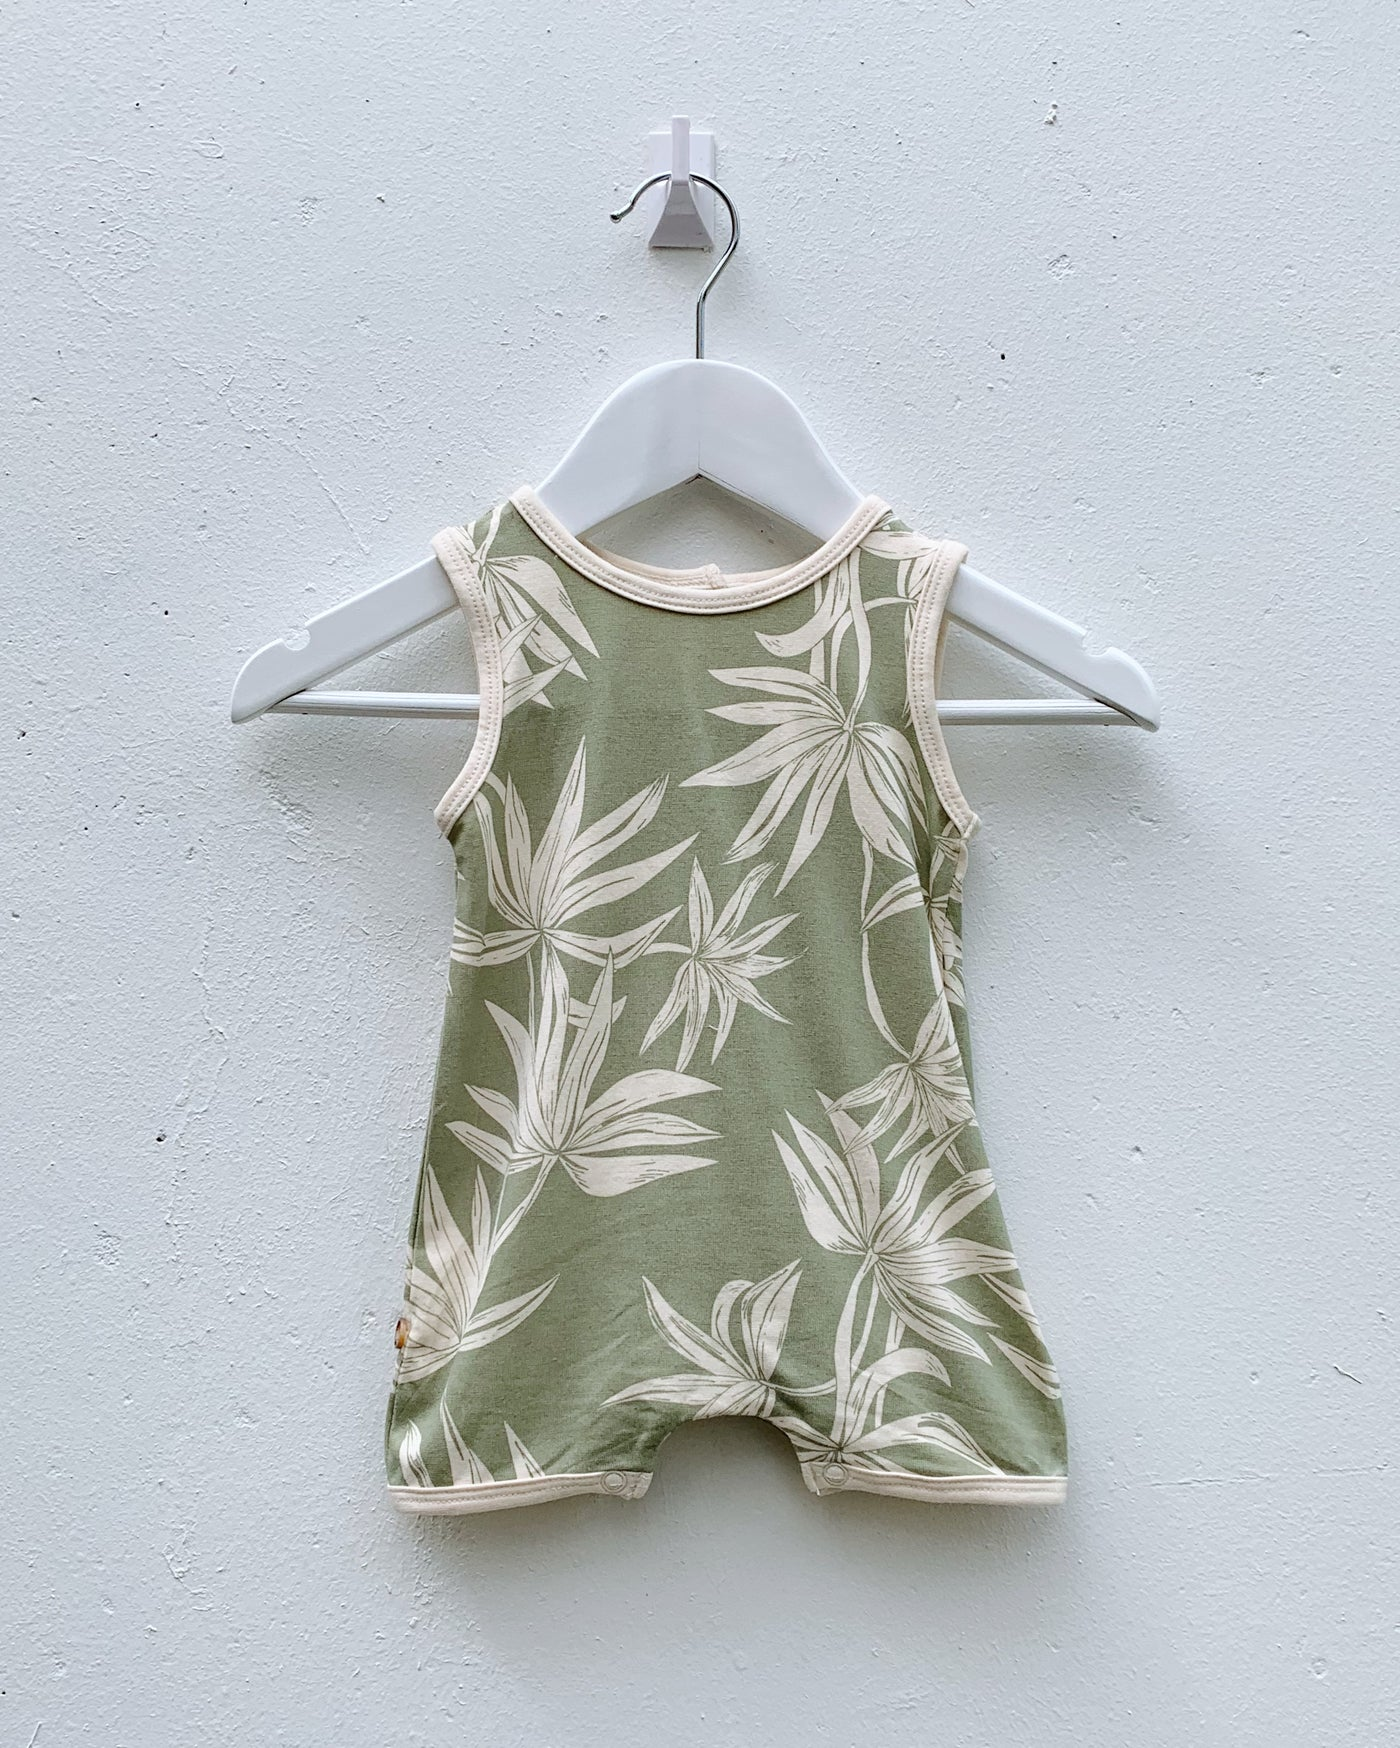 Bamboo Palm Playsuit - Sage - LAST SIZE (0-3m)!